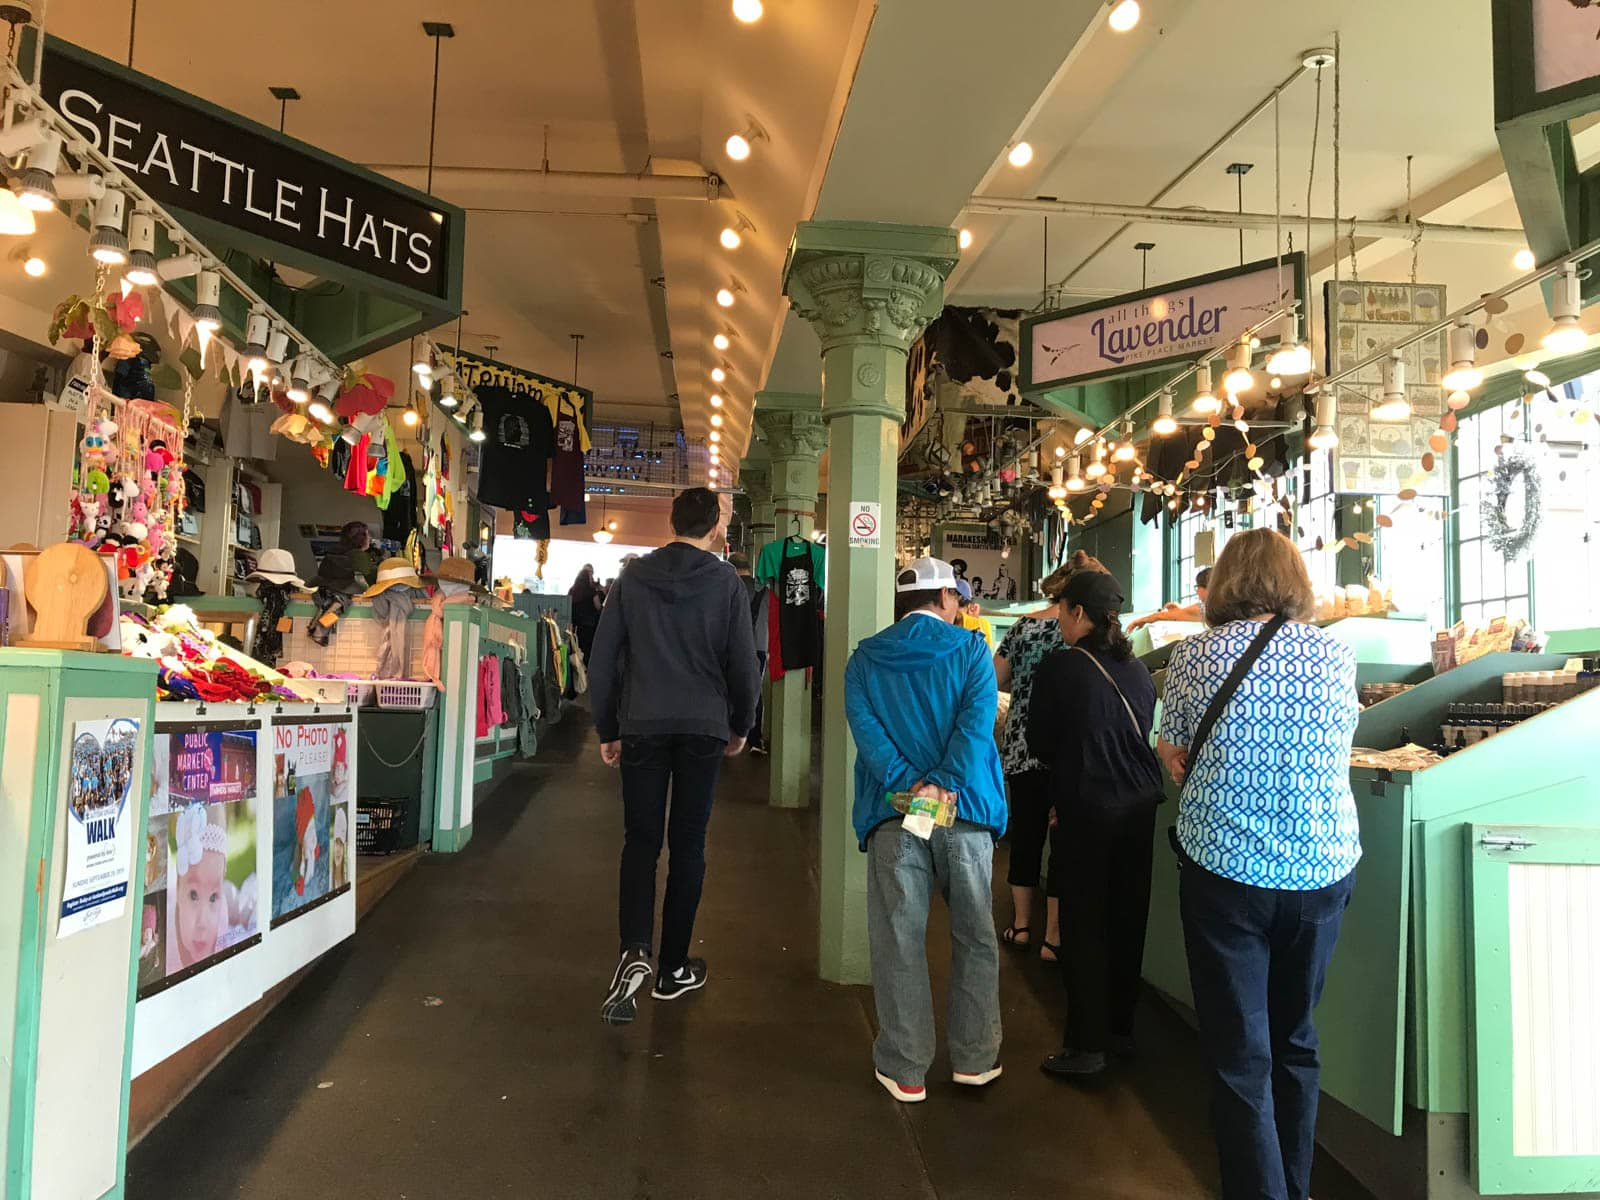 "Some people walking up a gradually sloping path between the stalls of an indoor market. One sign reads ""Seattle Hats"" and another reads ""Lavender""."